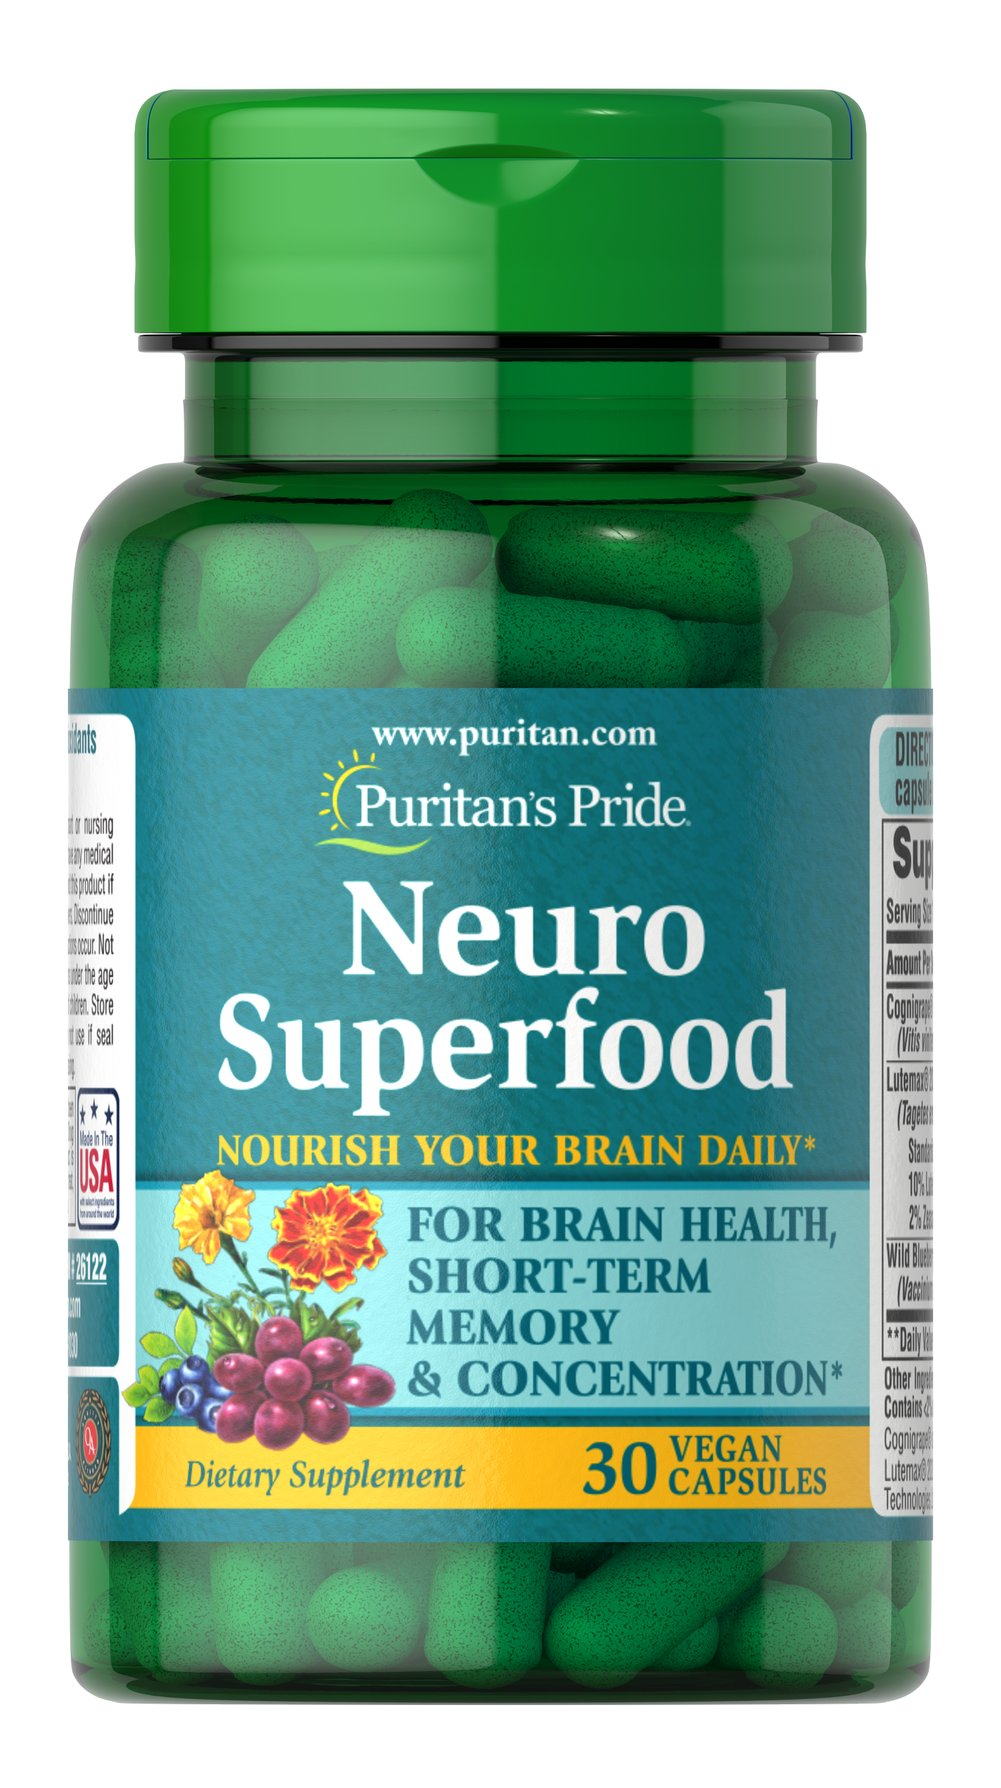 Neuro Superfood